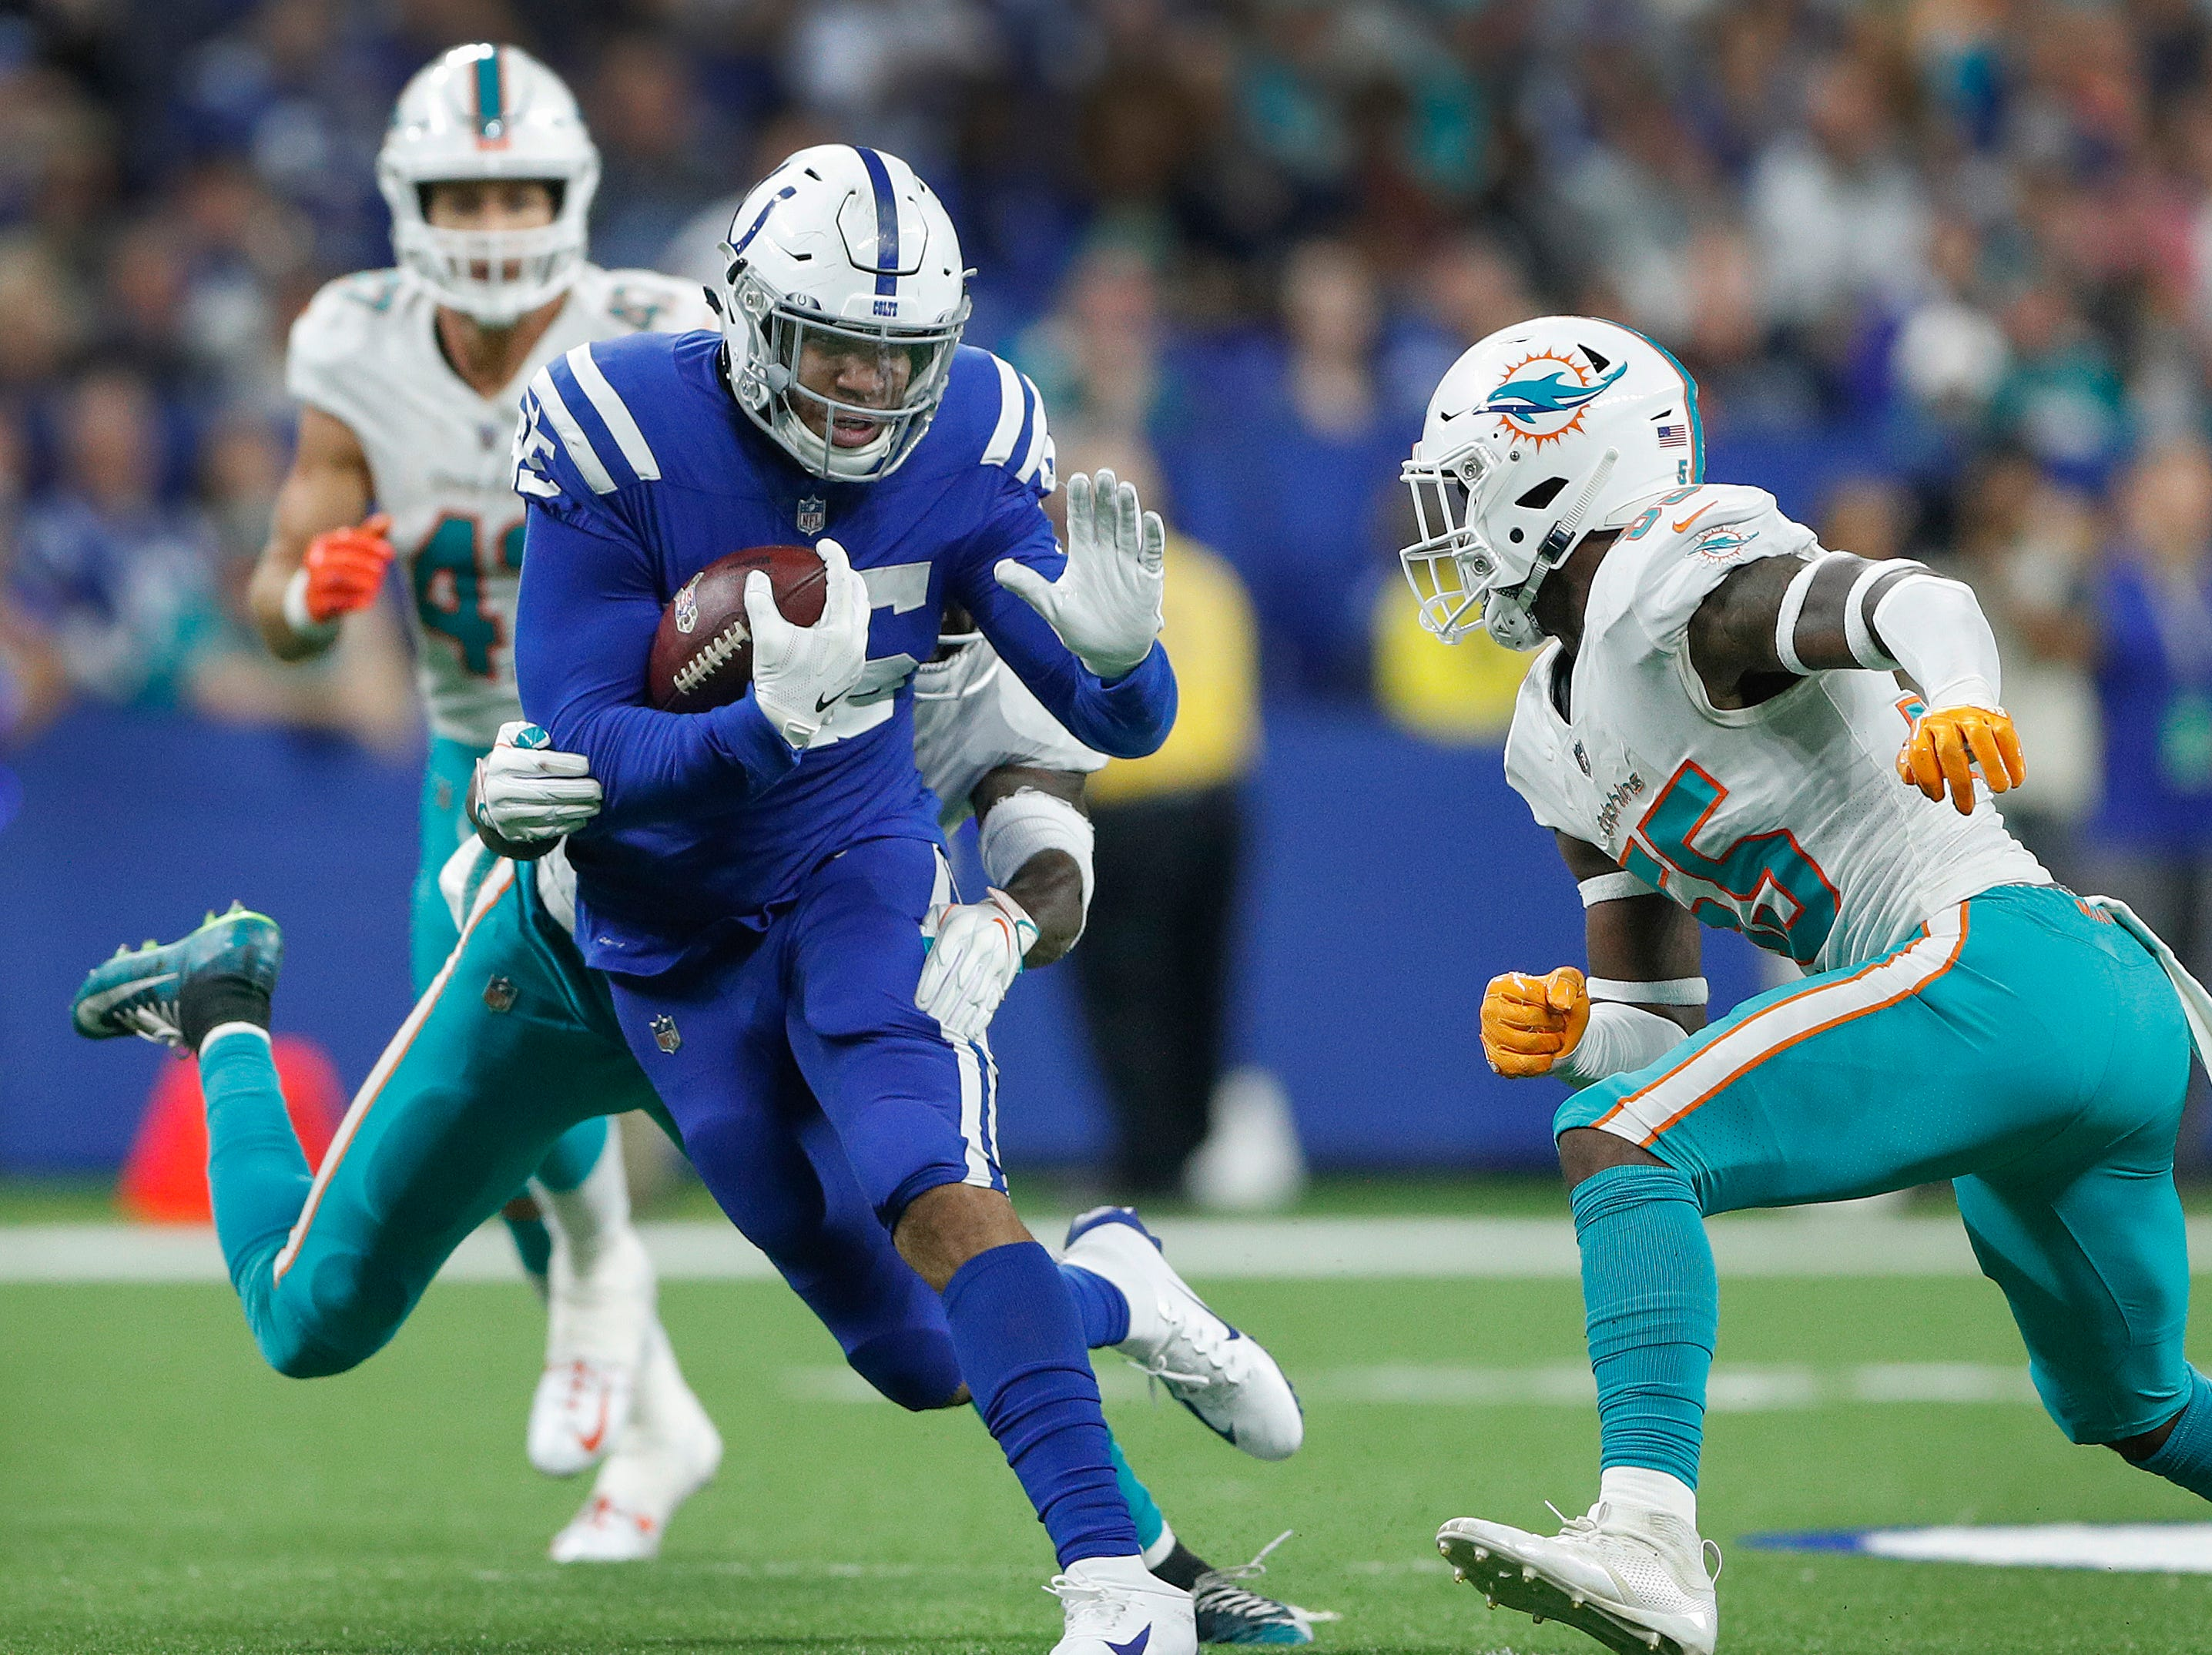 Indianapolis Colts tight end Eric Ebron (85) braces for the hit by Miami Dolphins outside linebacker Jerome Baker (55) in the second half of their game at Lucas Oil Stadium on Sunday, Nov. 25, 2018. The Colts defeated the Dolphins 27-24.